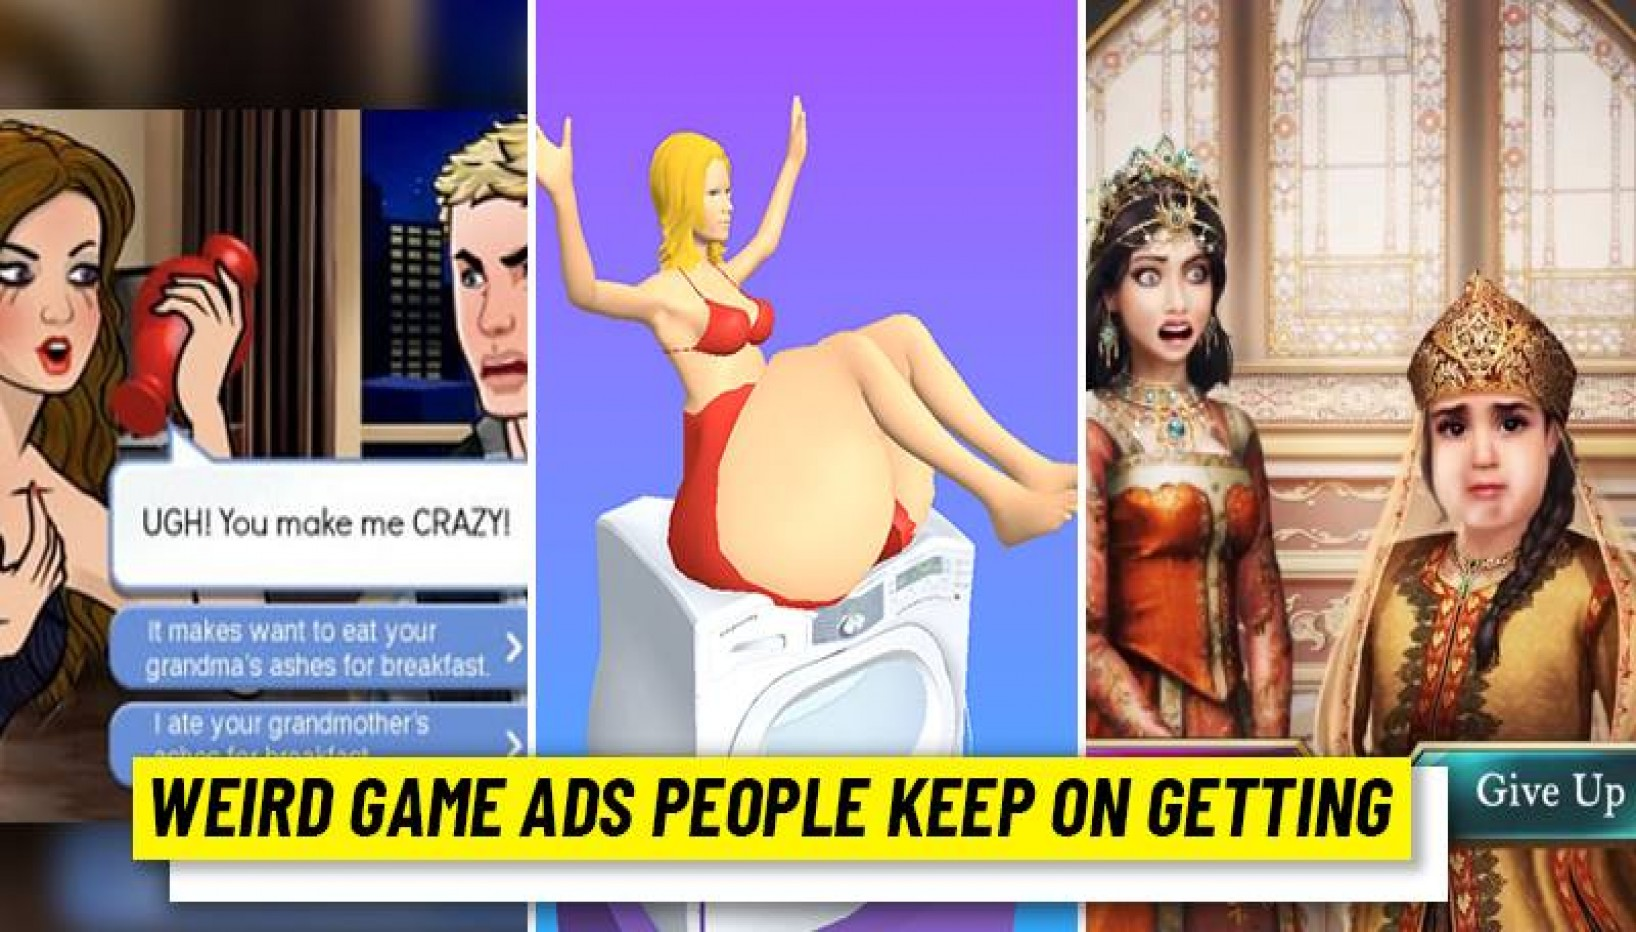 Weird Game Ads People Keep on Getting